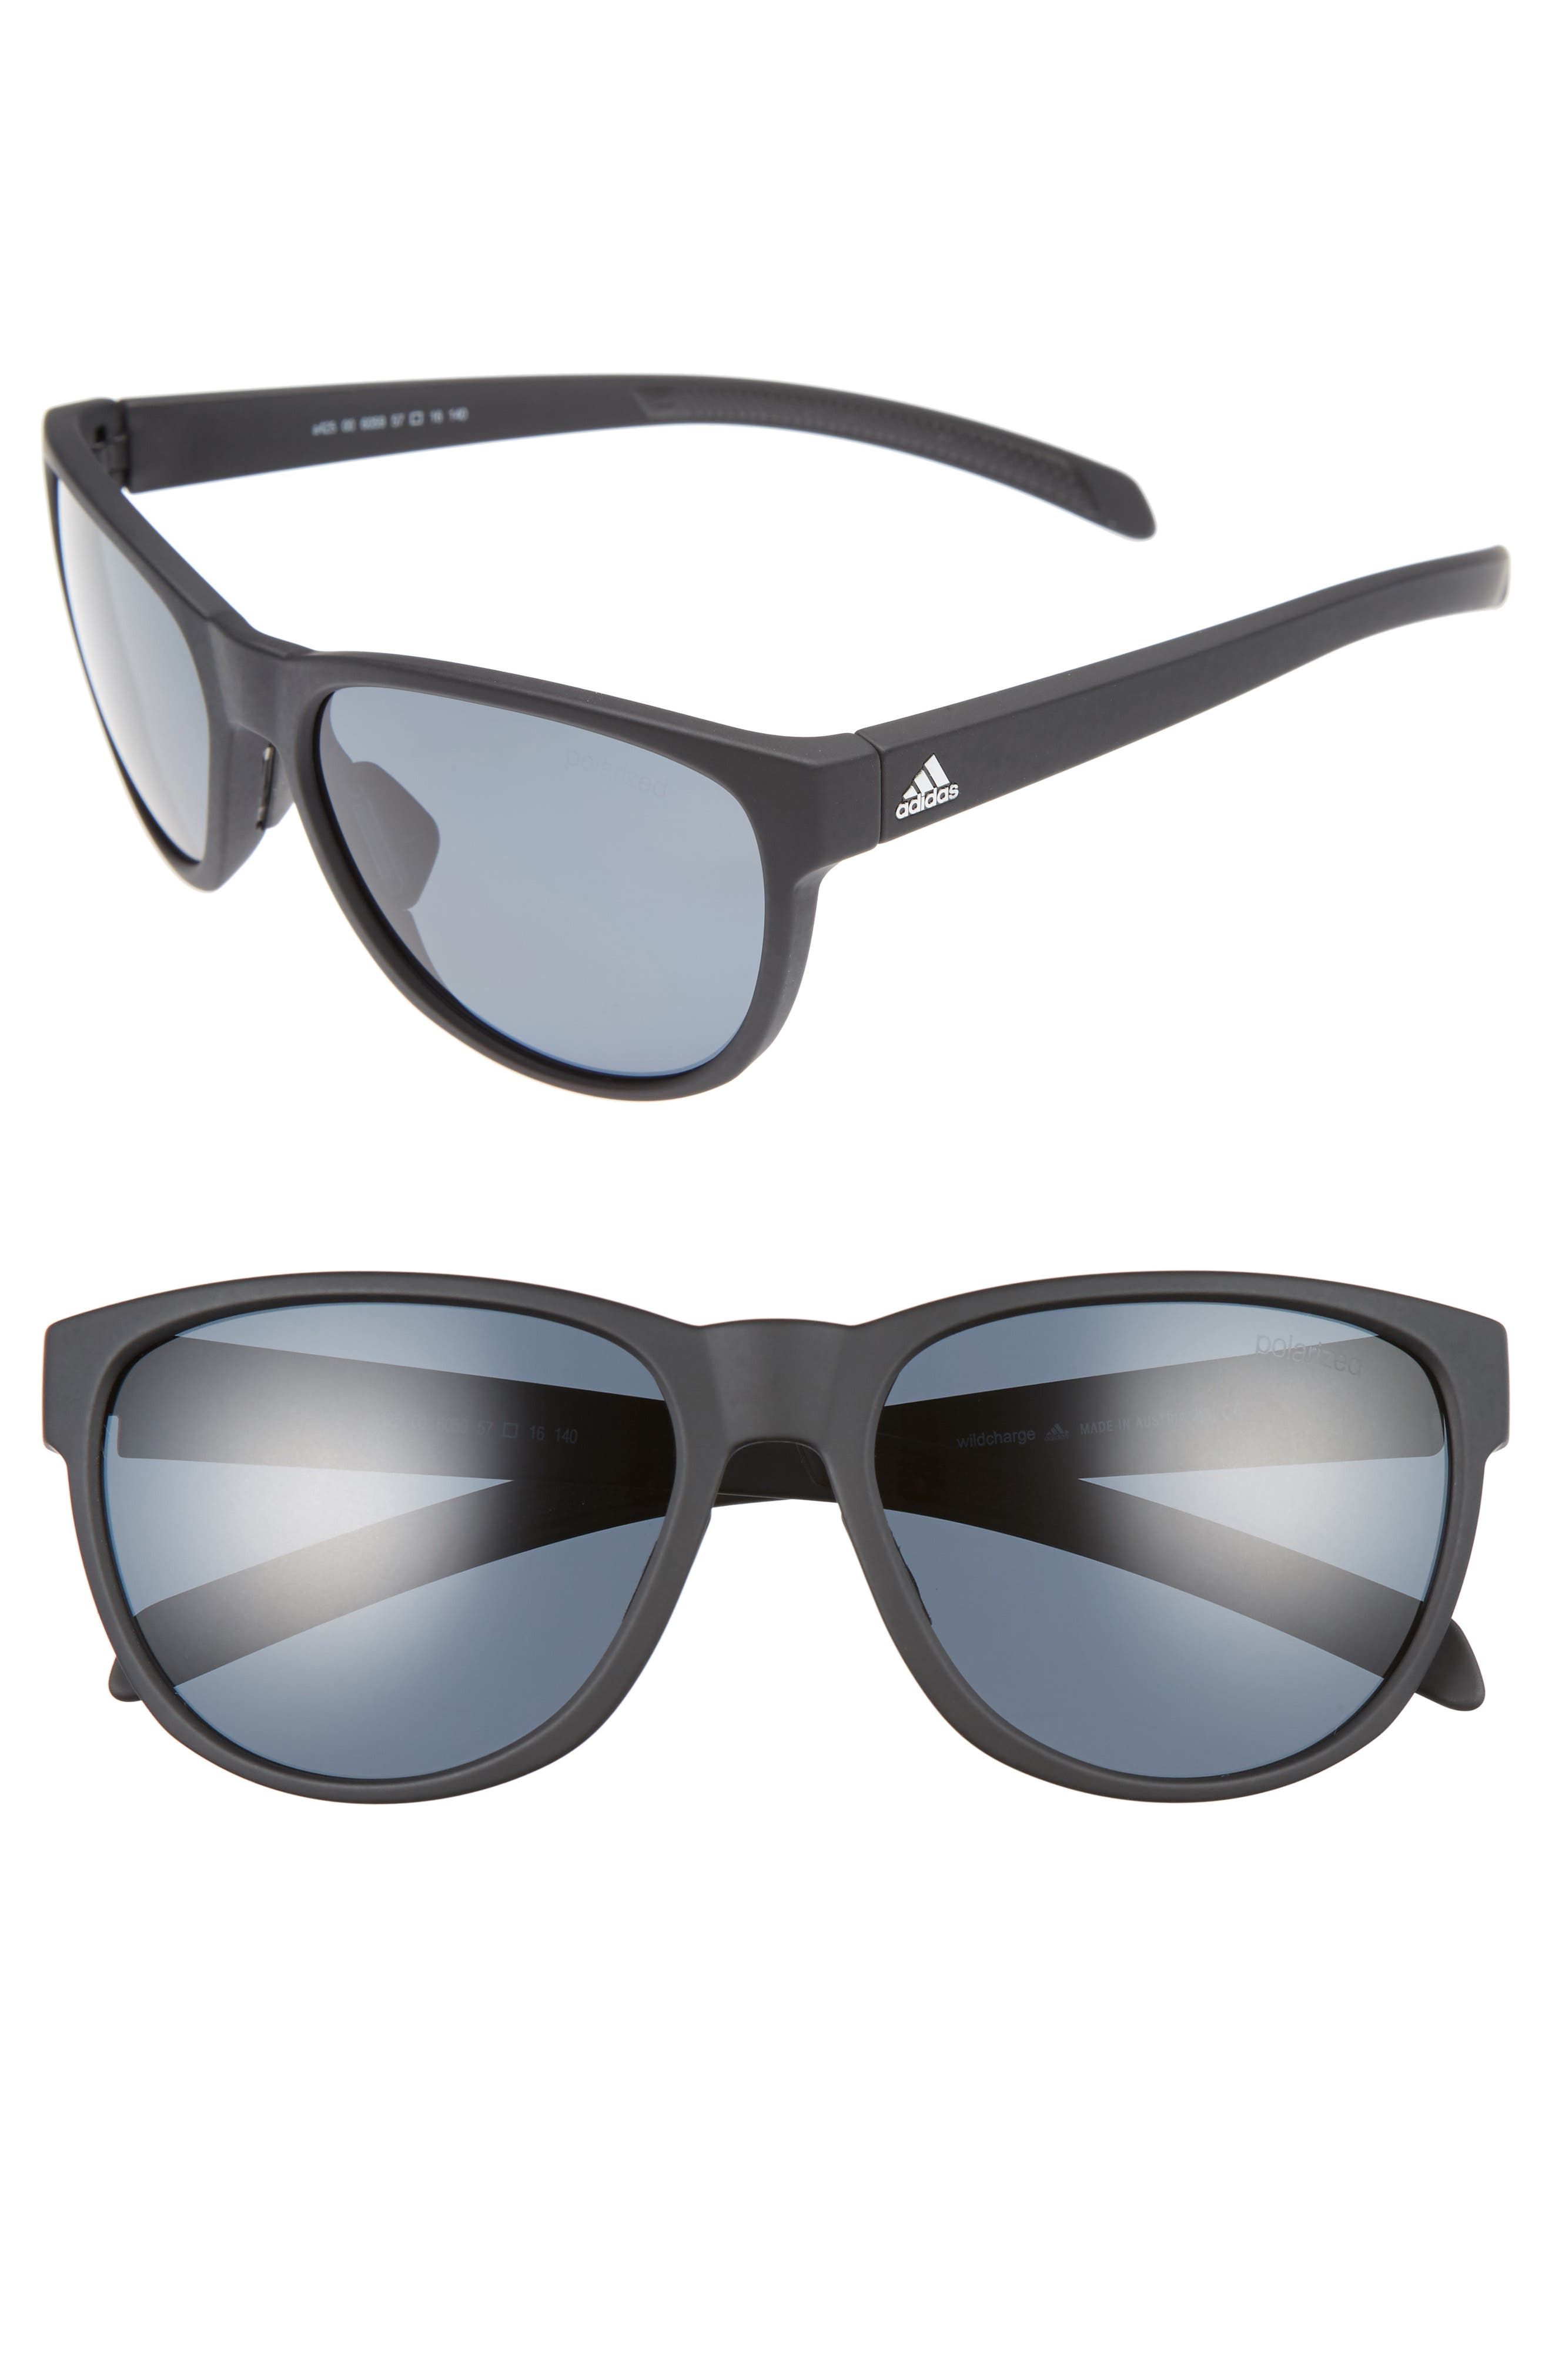 Wildcharge 61mm Polarized Sunglasses,                         Main,                         color, 001